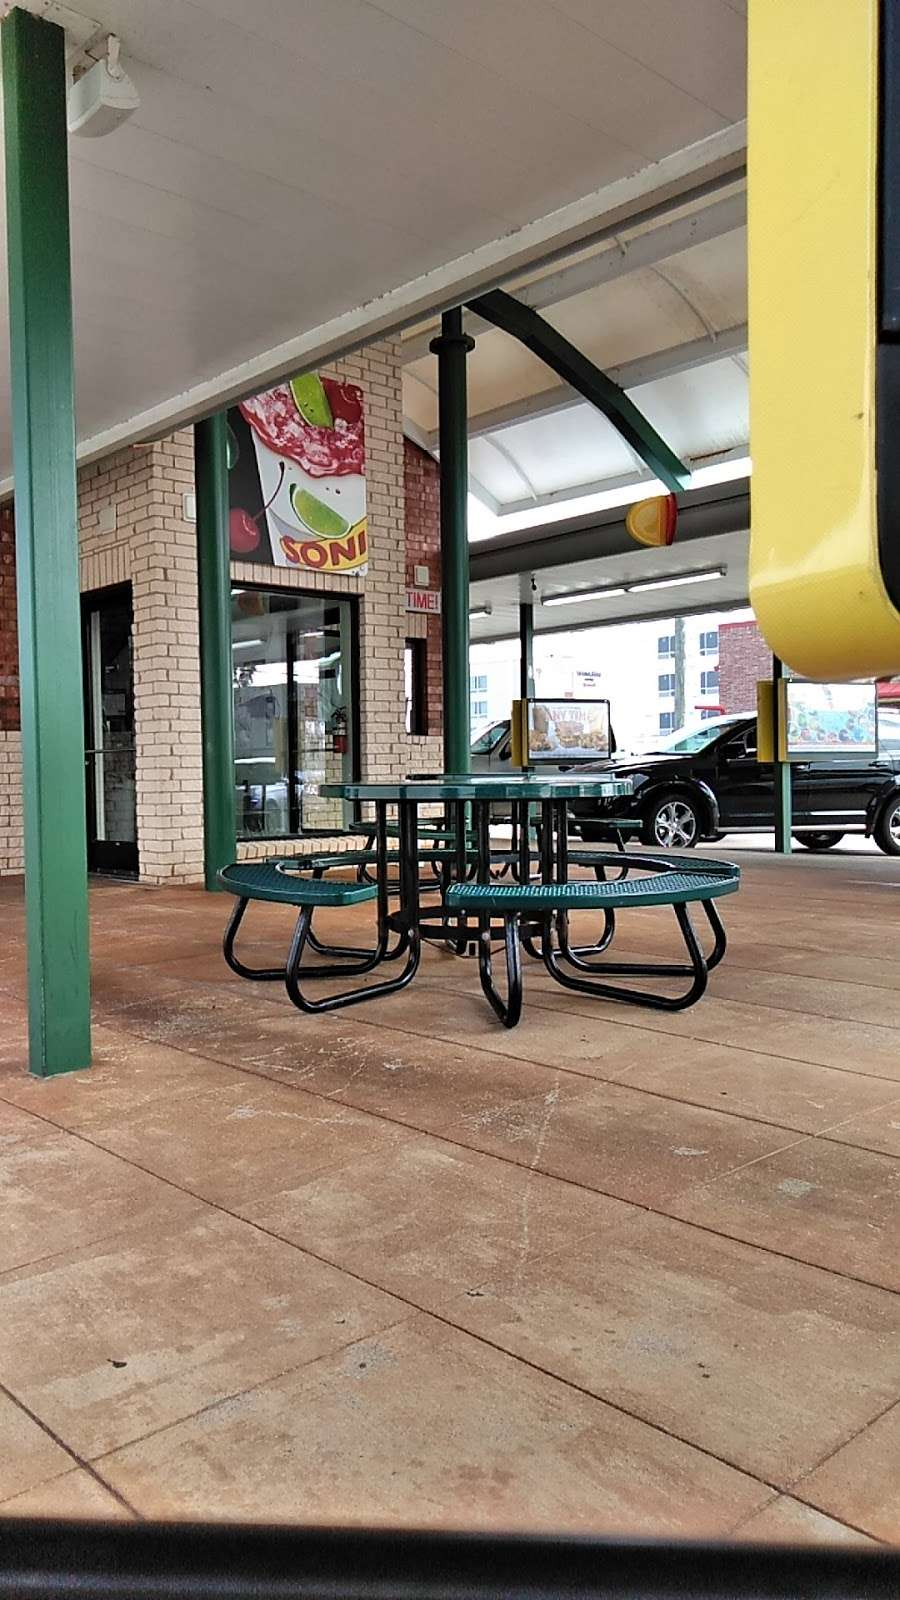 Sonic Drive-In - store  | Photo 3 of 10 | Address: 7360 Garth Rd, Baytown, TX 77521, USA | Phone: (281) 421-4763